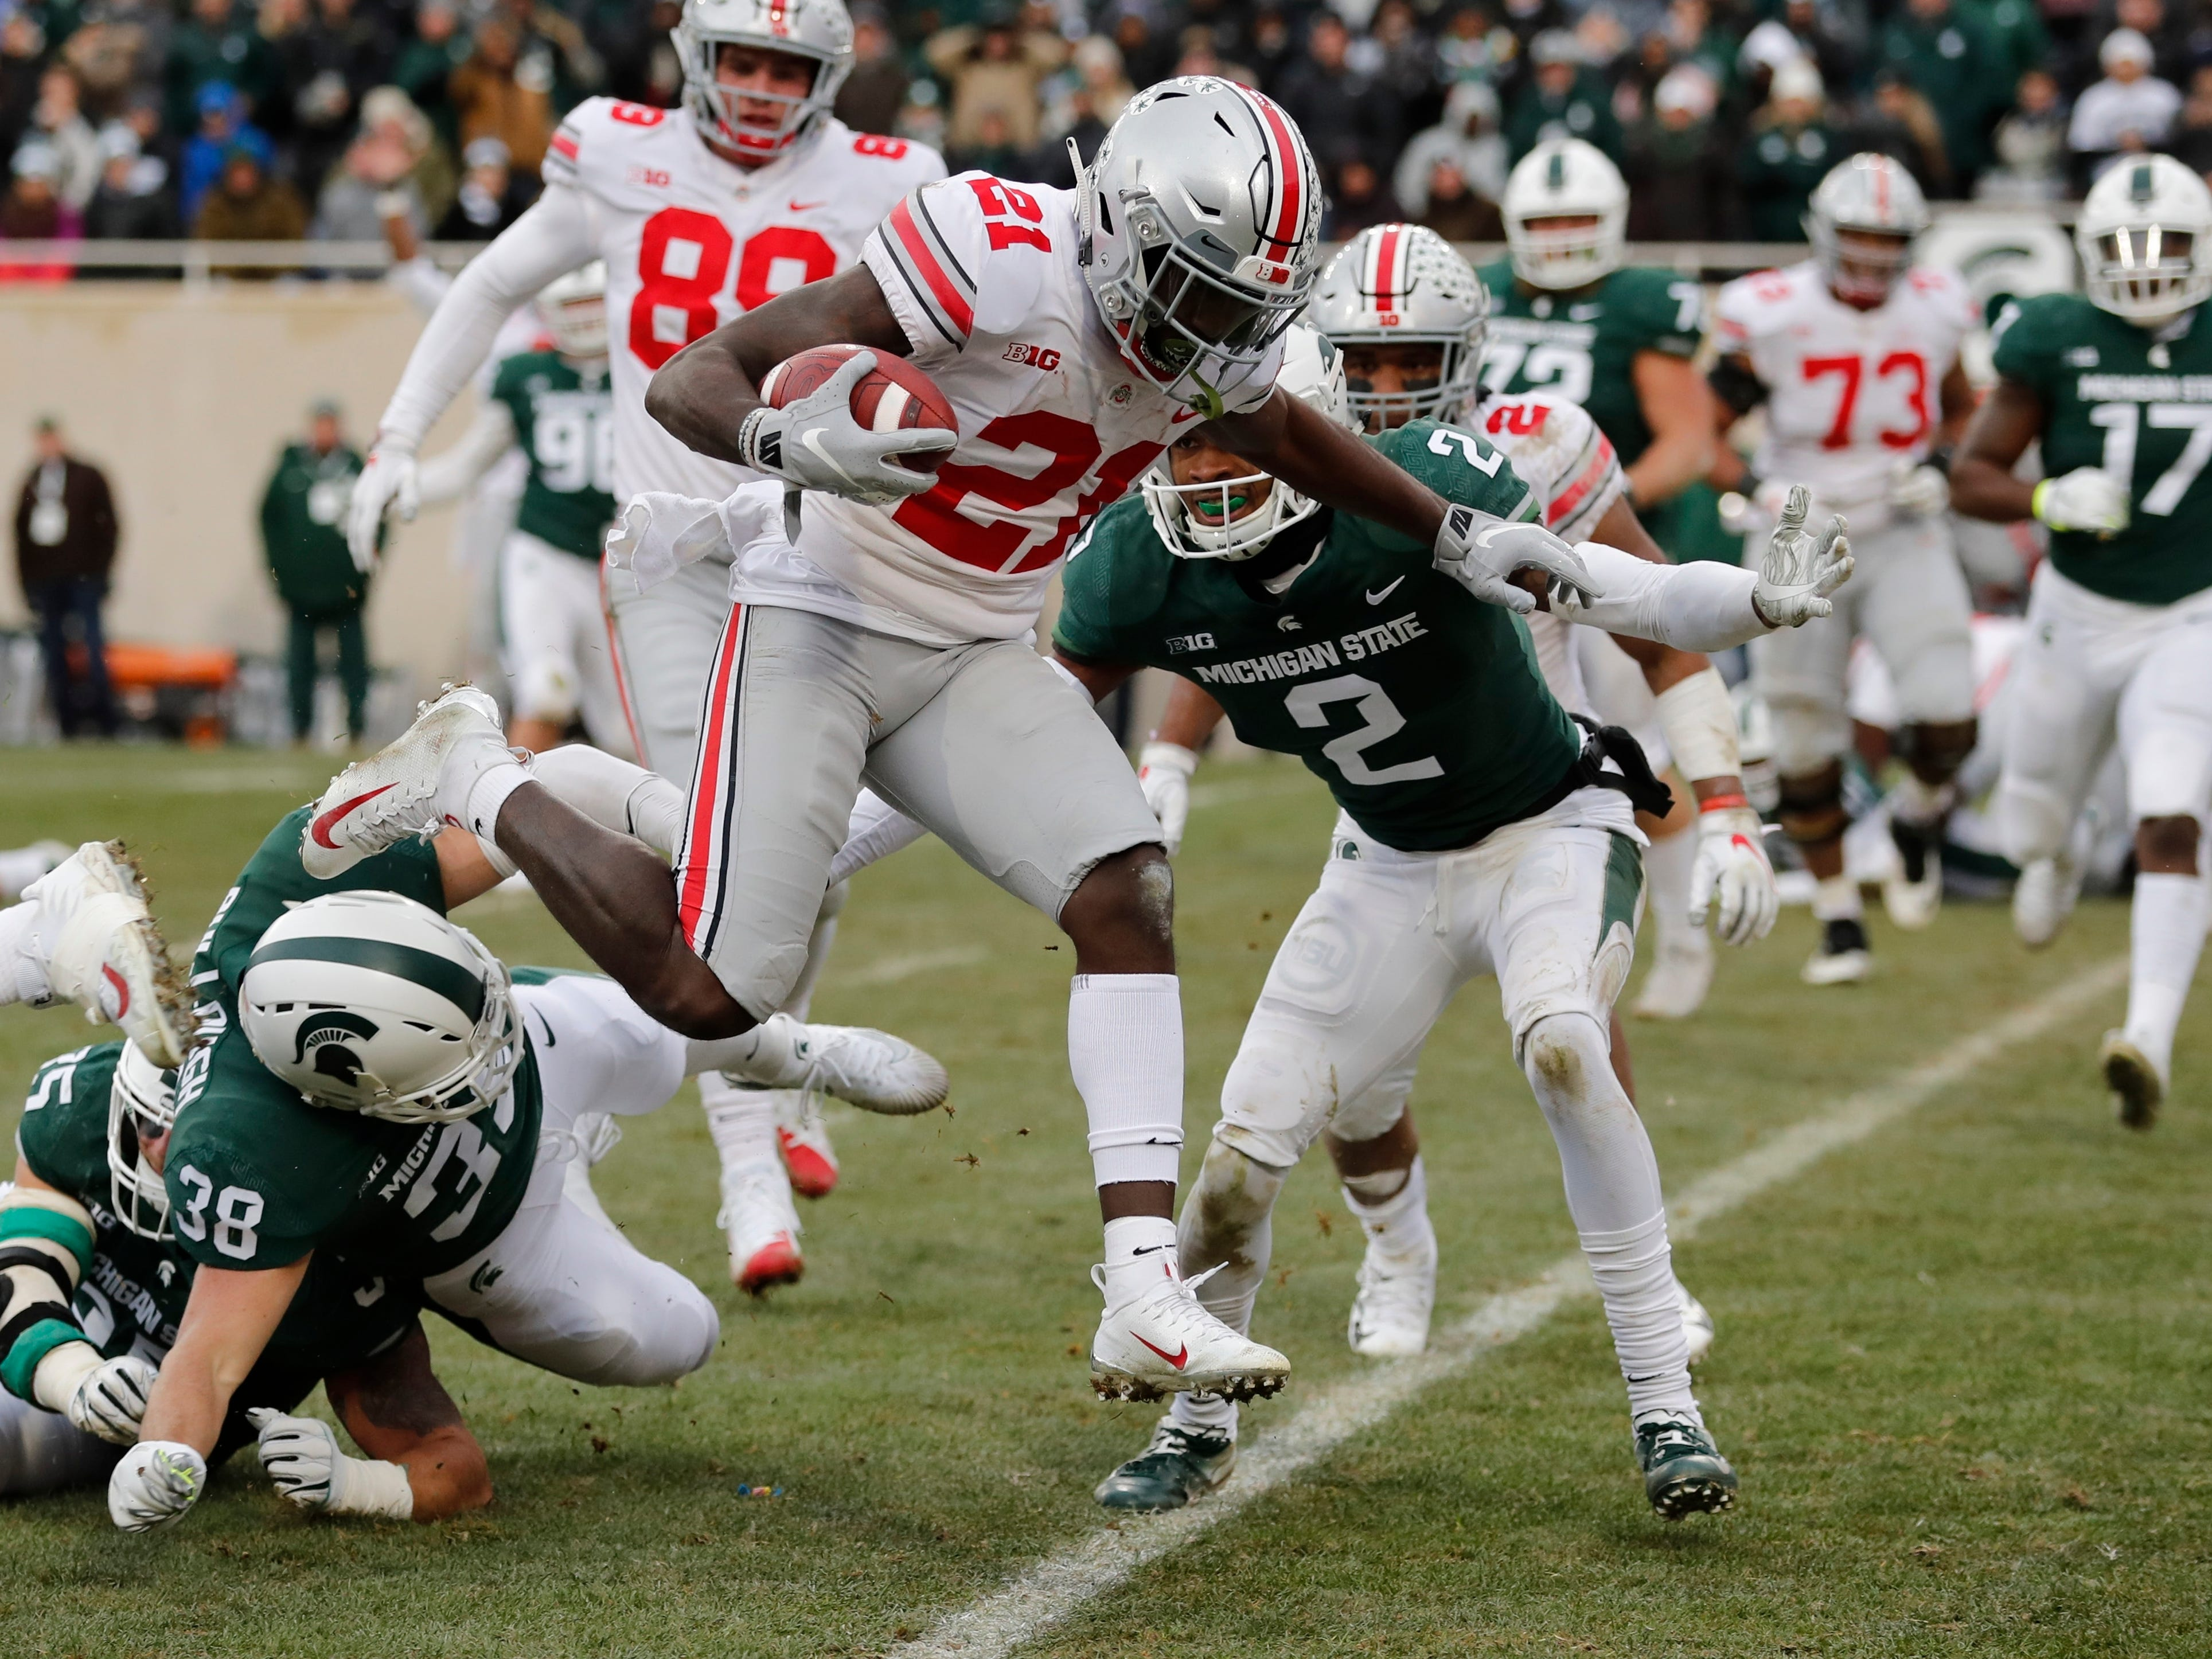 Michigan State football vs. Ohio State reacts: That went downhill fast